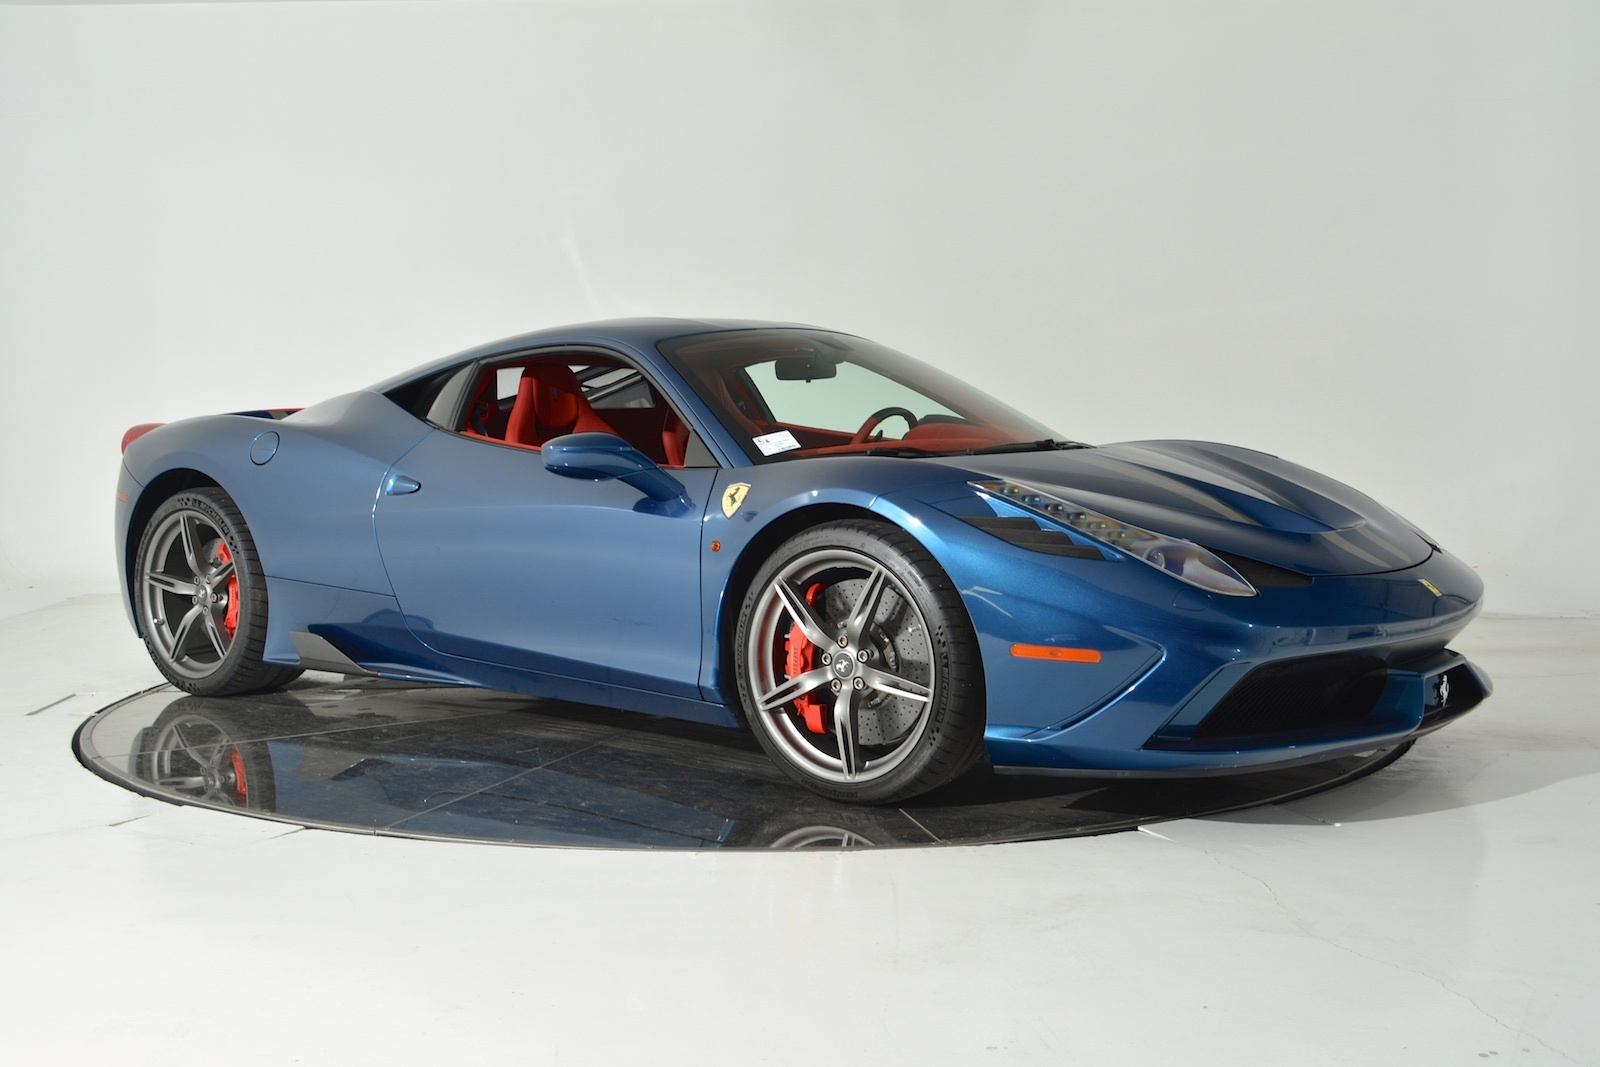 Ferrari 458 Speciale For Sale >> Blue Ferrari 458 Speciale For Sale Gtspirit